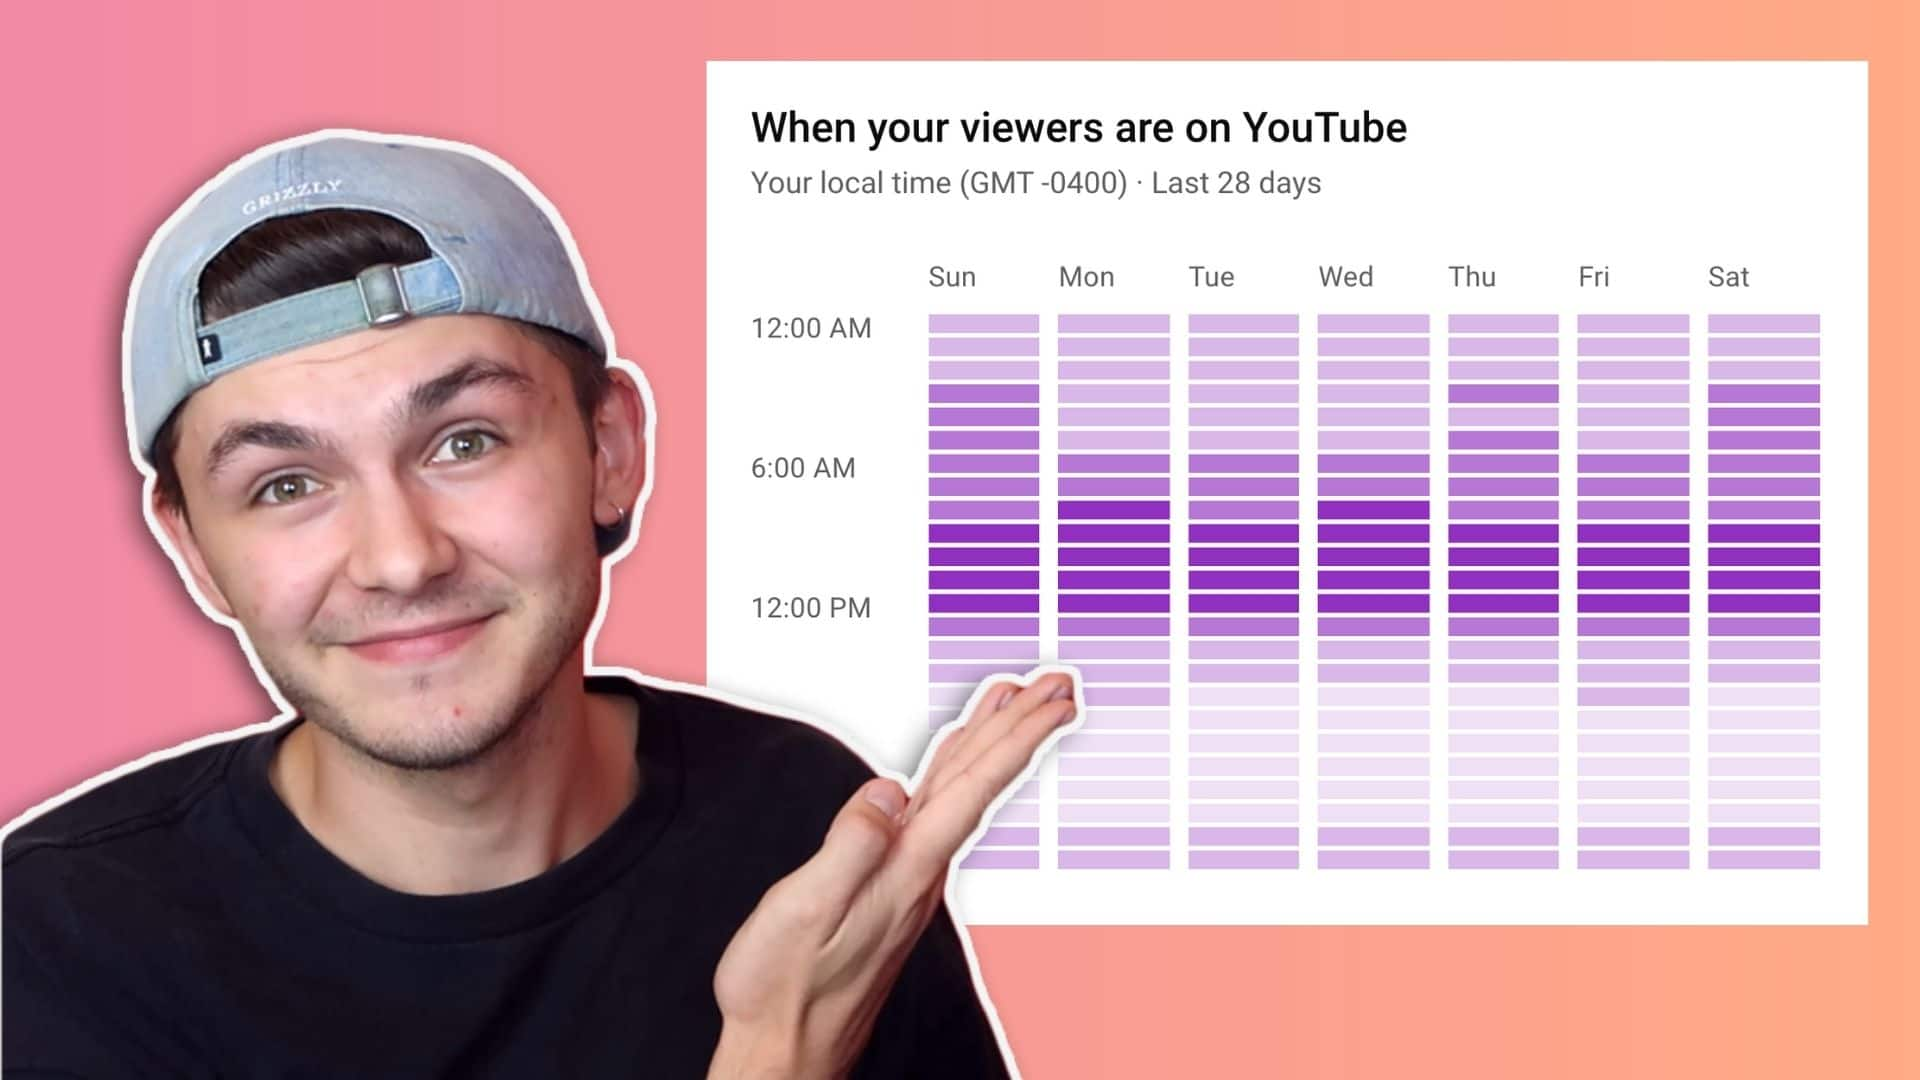 Here's the best day and time to post on YouTube according to our research